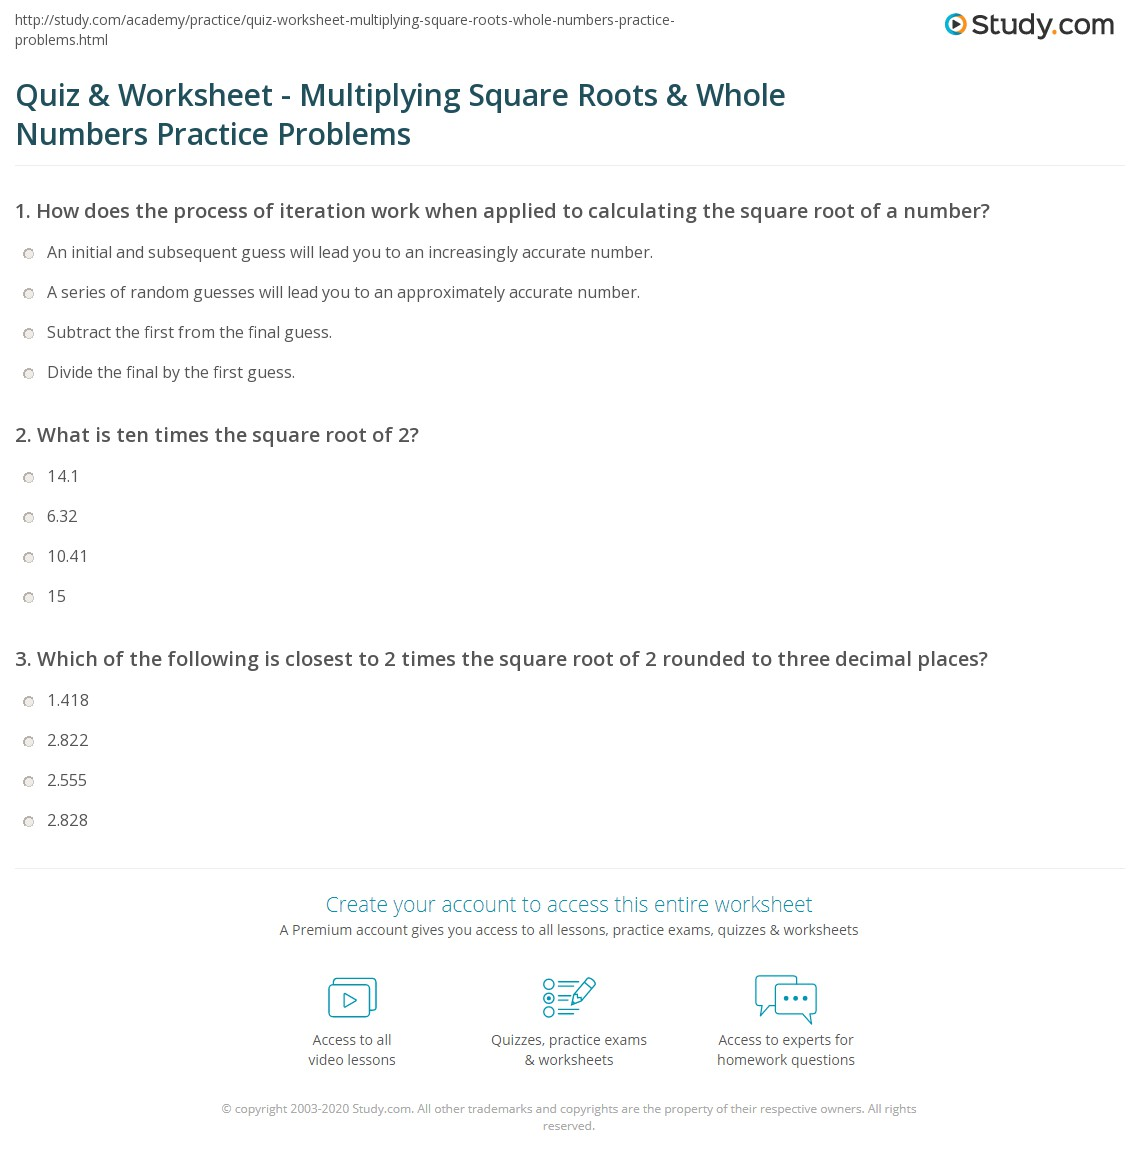 Printables Multiplying Square Roots Worksheet quiz worksheet multiplying square roots whole numbers print 2 times the root of how to steps worksheet